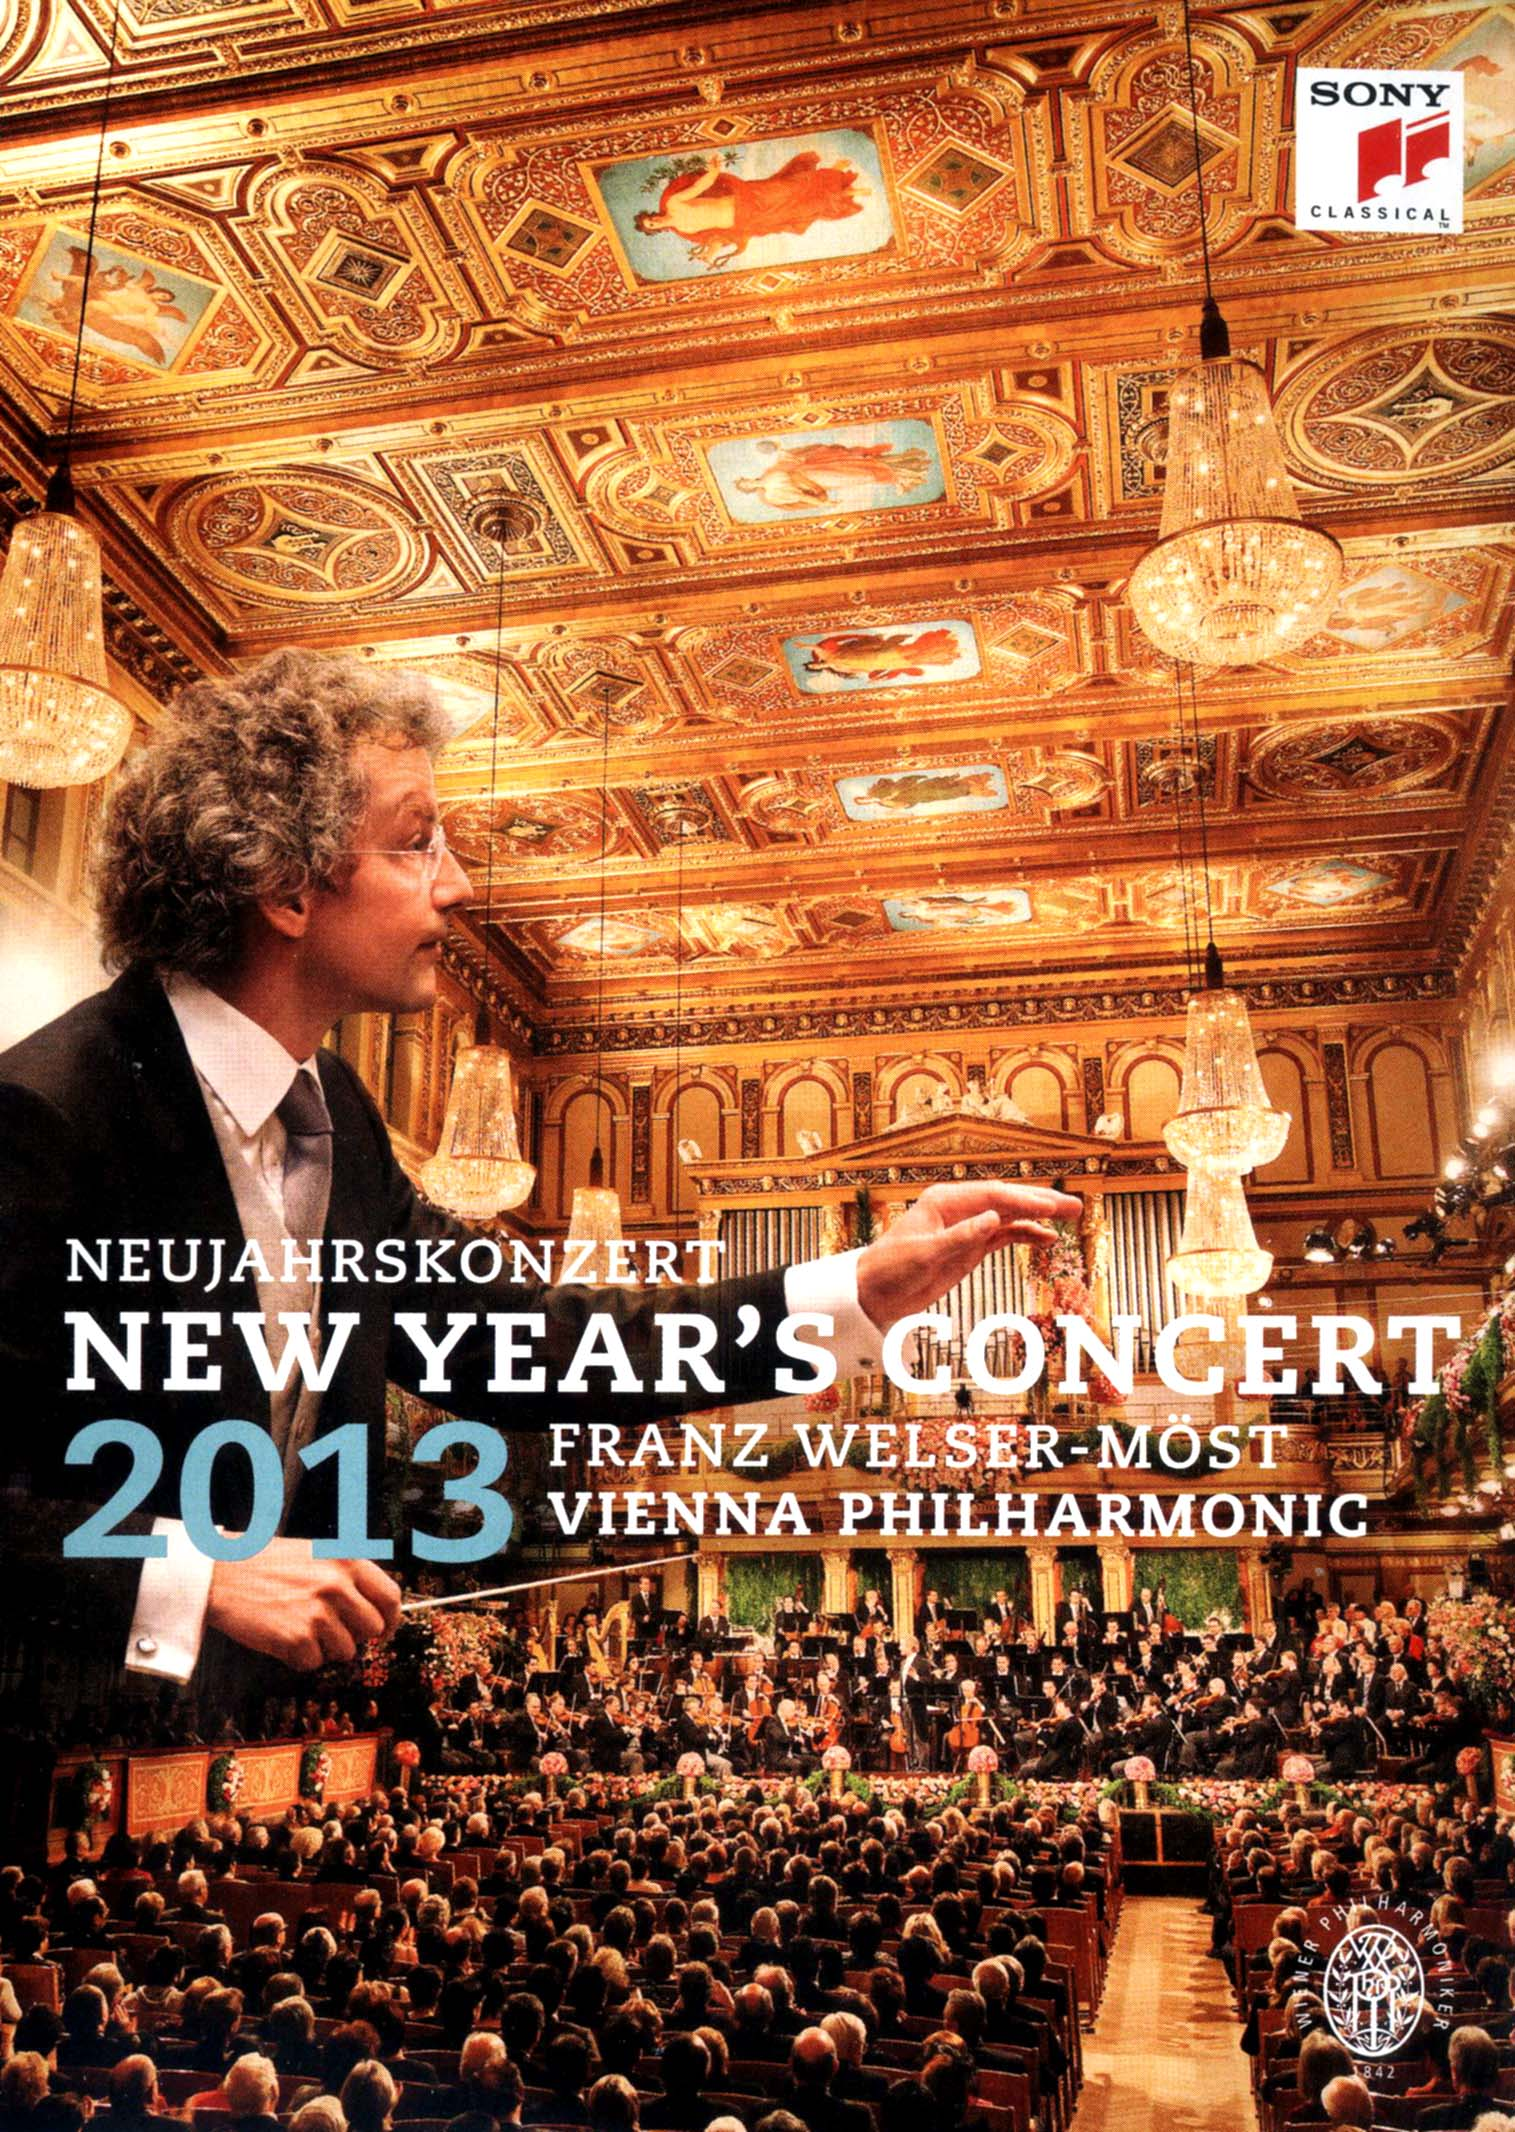 New Year's Concert 2013